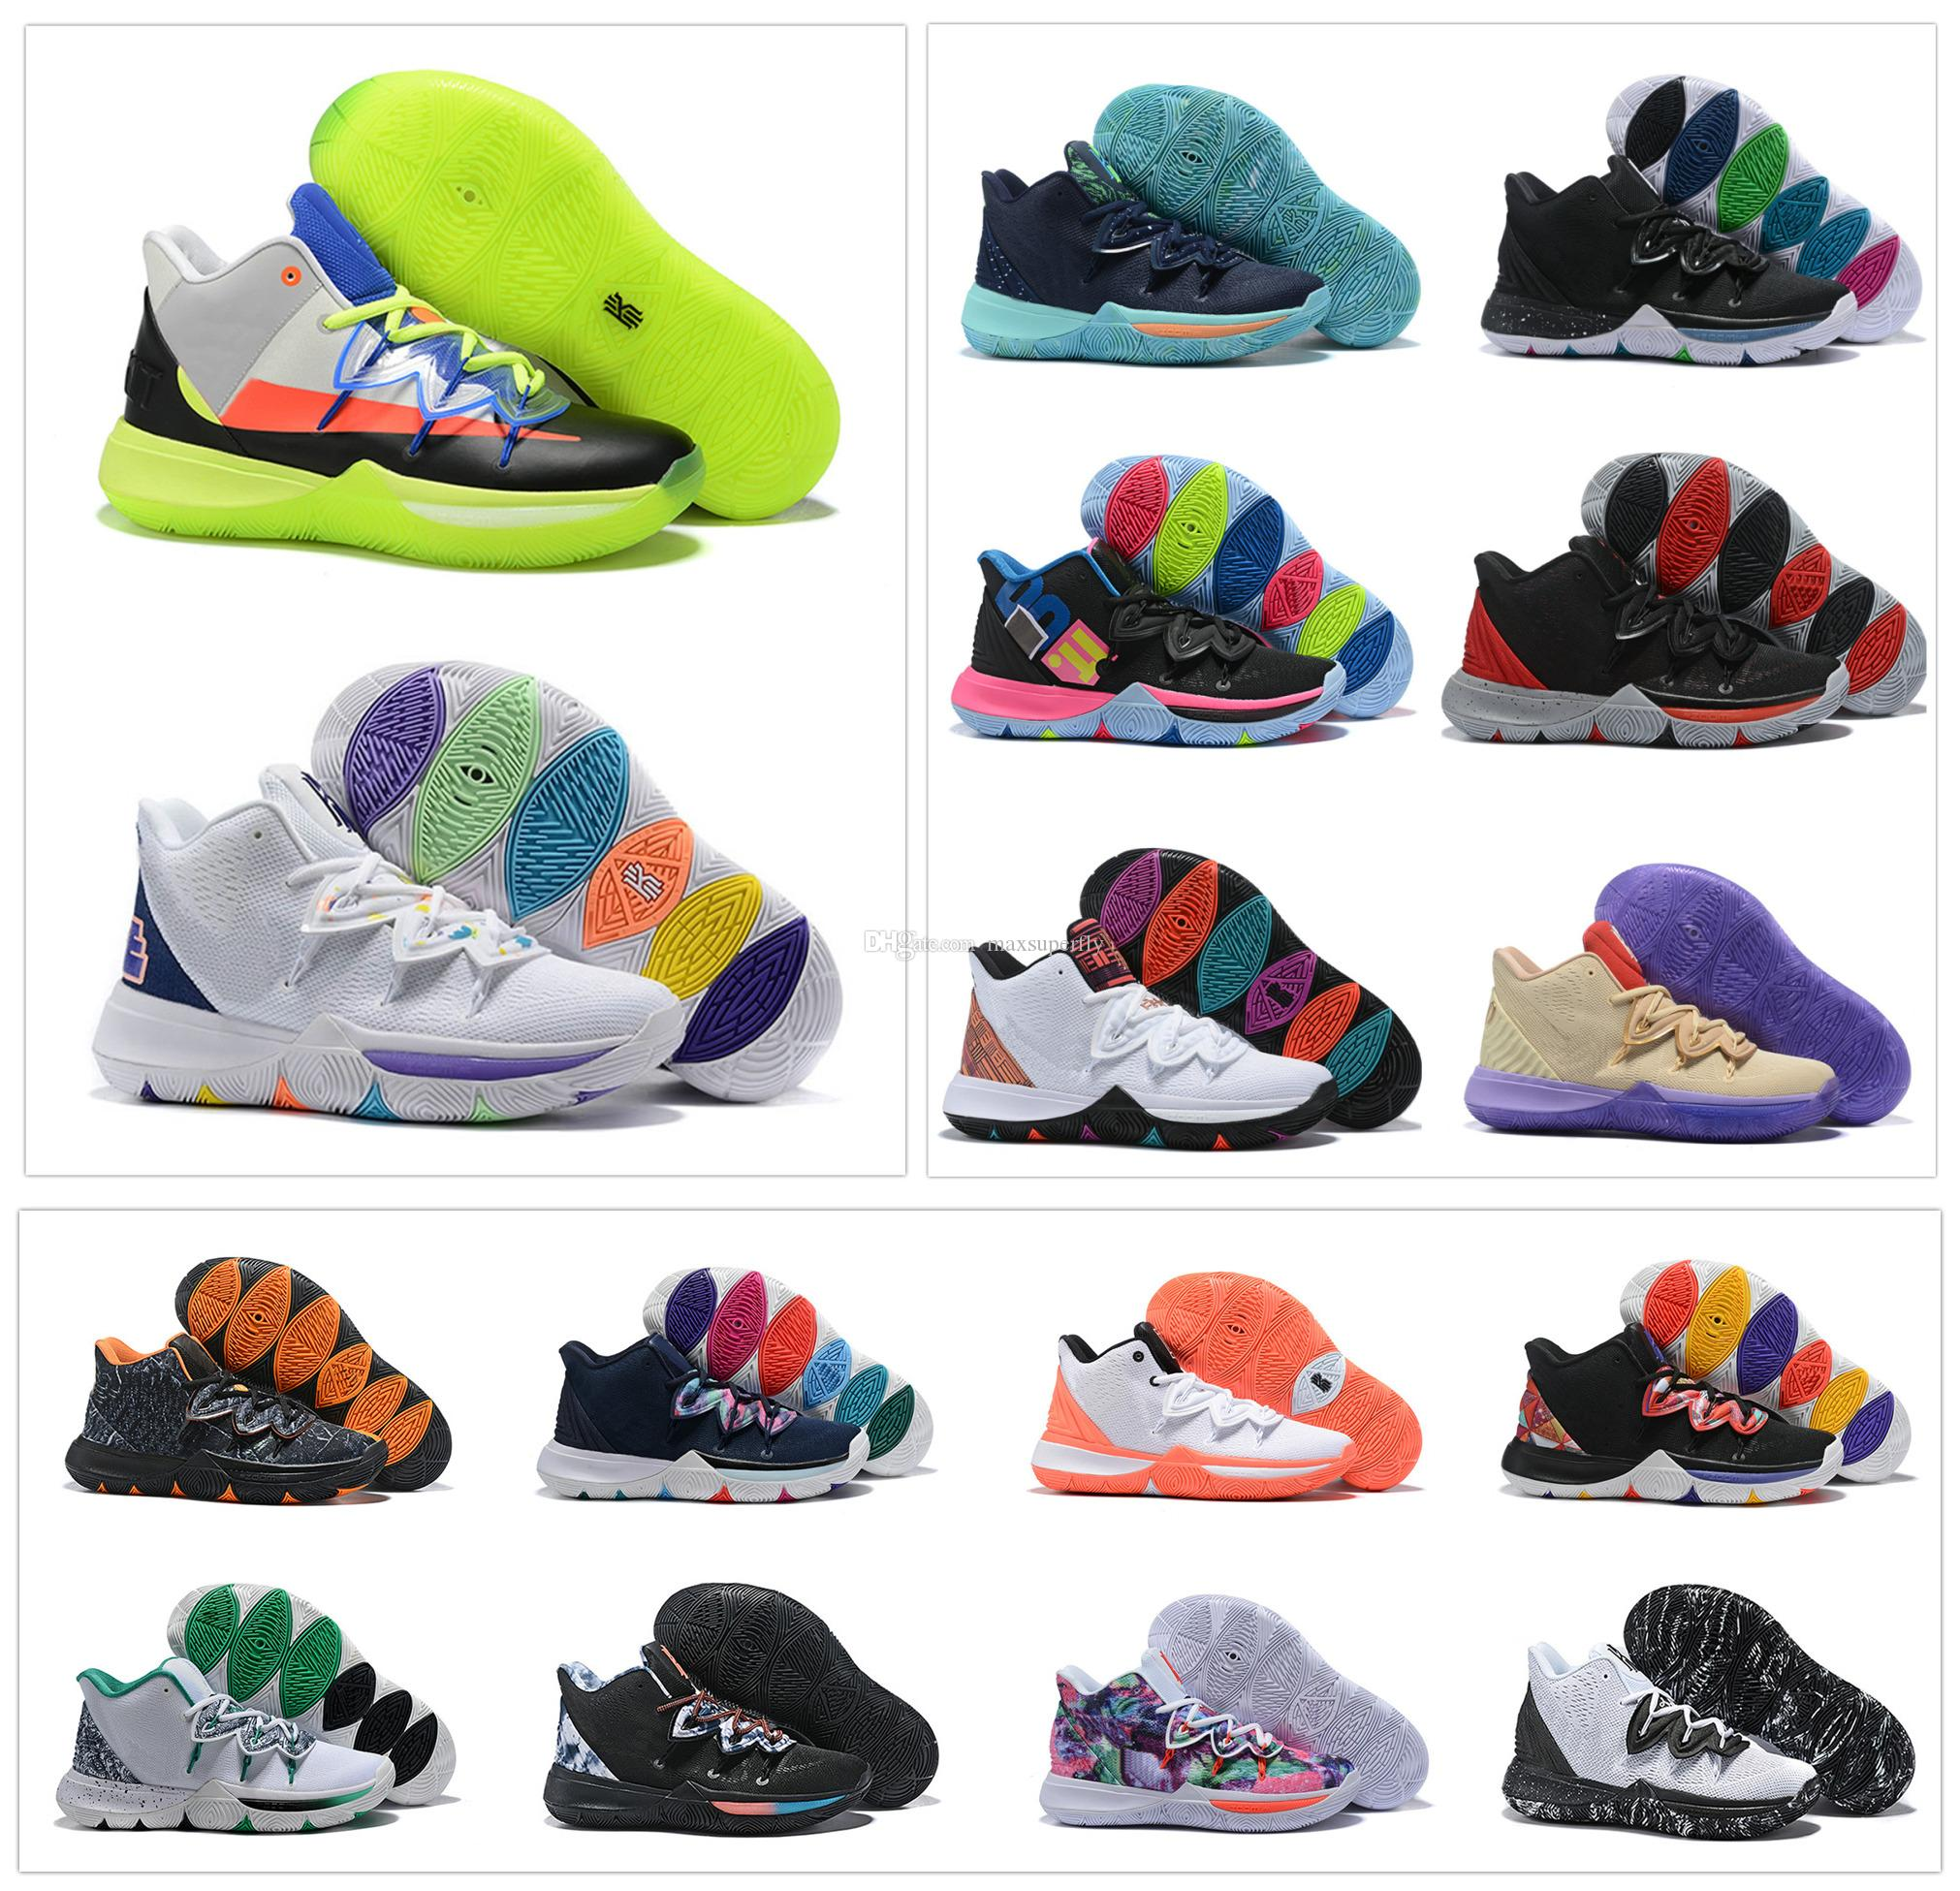 new products 0004b 08baf Hot Boys Kids Kyrie V 5 All-Star Basketball Shoes Irving 5S Men Youth Girls  Women Zoom Sport training Sneakers High Ankle Size 36-46